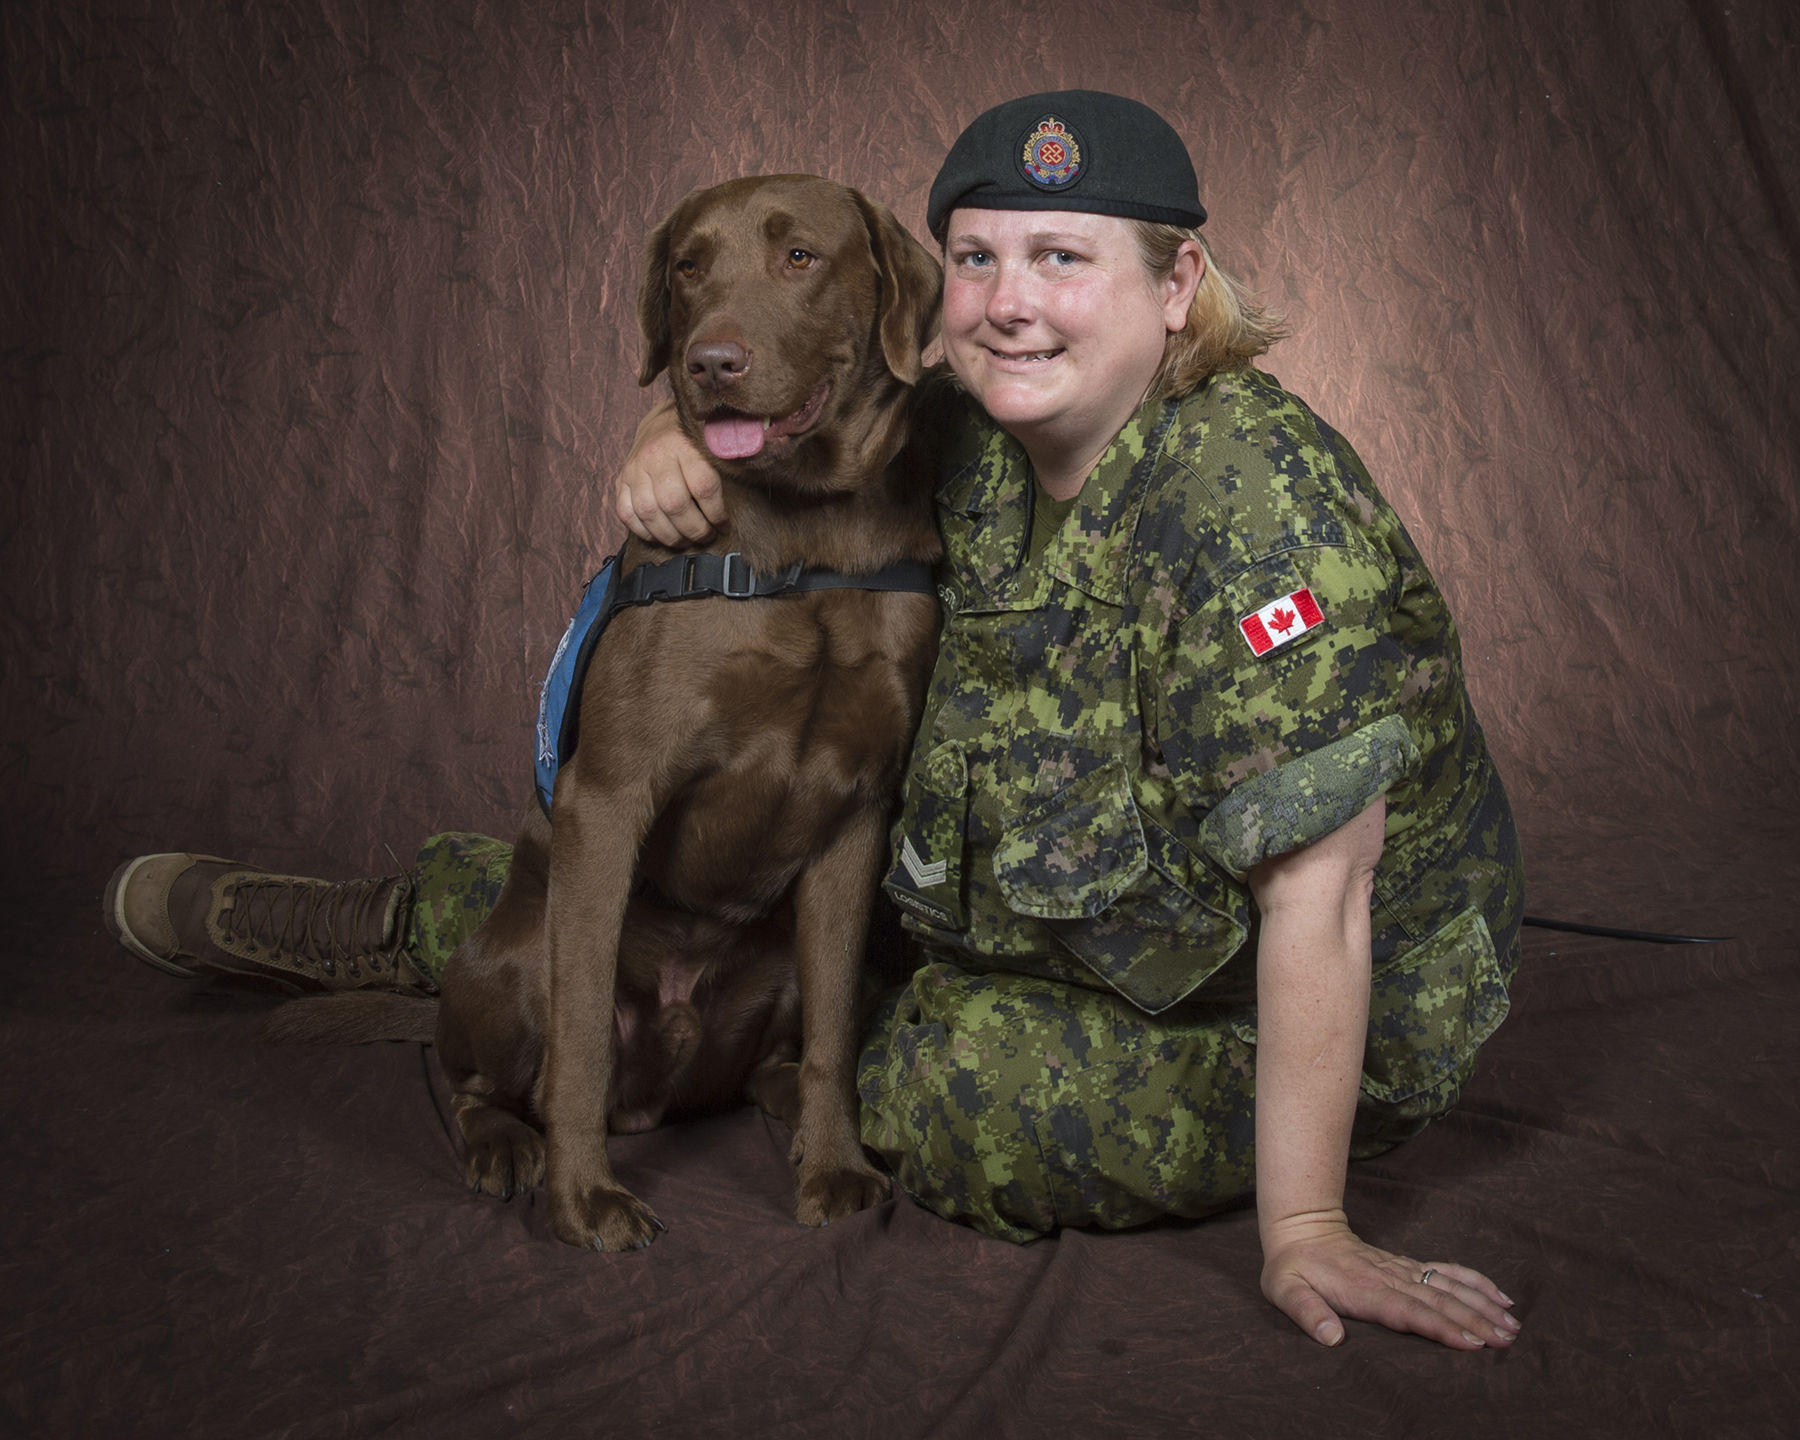 A woman wearing a military disruptive pattern uniform sits beside a chocolate-coloured Labrador dog. She has her right arm wrapped around the animal.